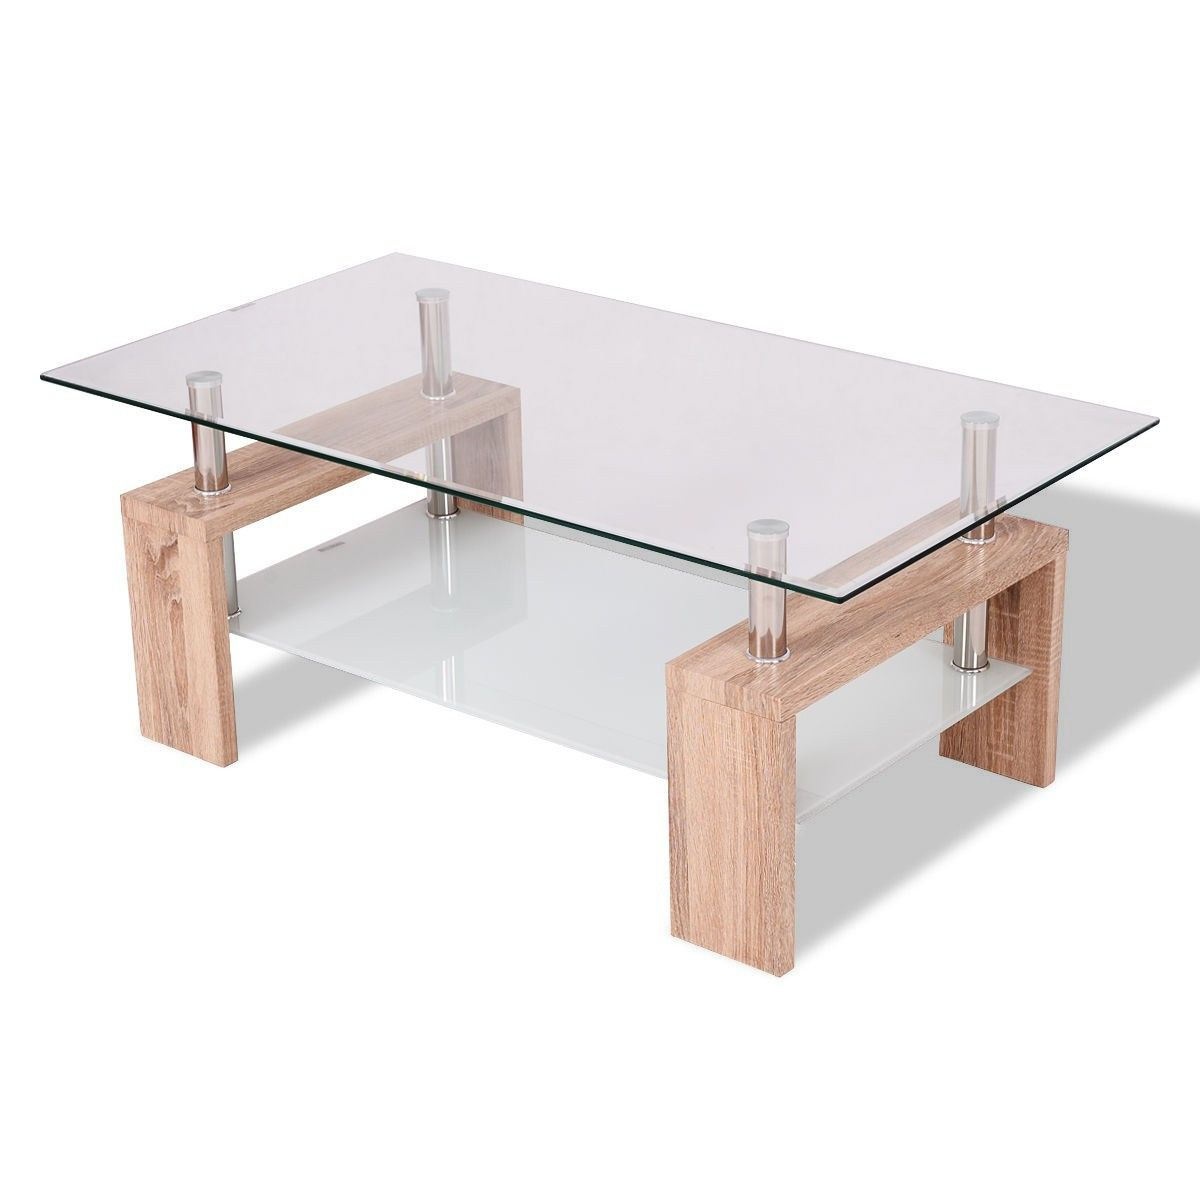 Superior 20 Coffee Table Tempered Glass   Luxury Home Office Furniture Check More At  Http:/